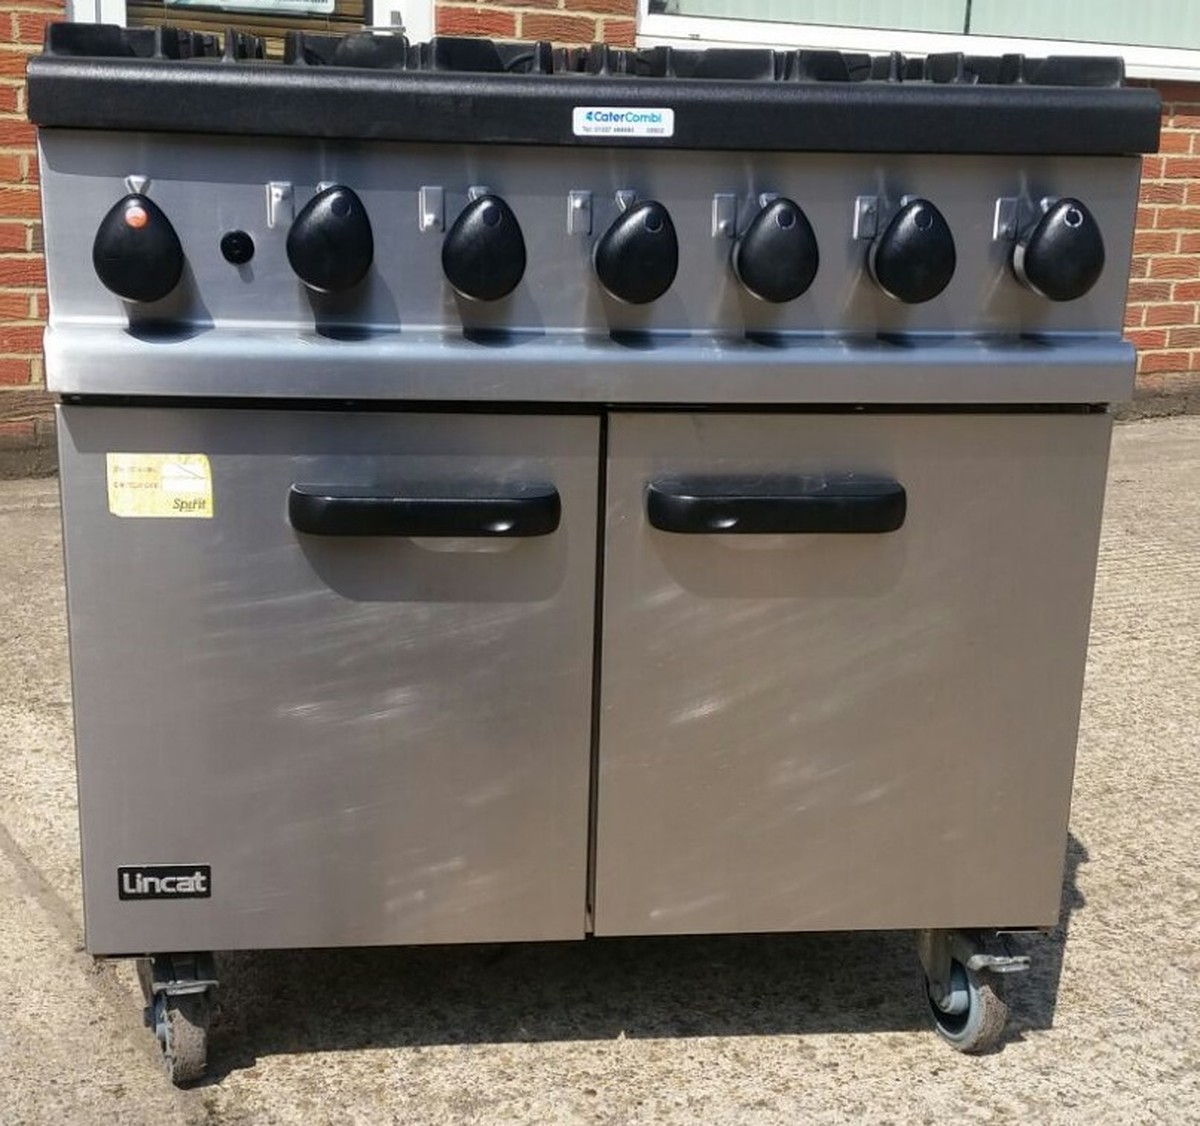 used commercial kitchen equipment buyers cabinets for sale by owner catering rentals 6 burner ovens lincat